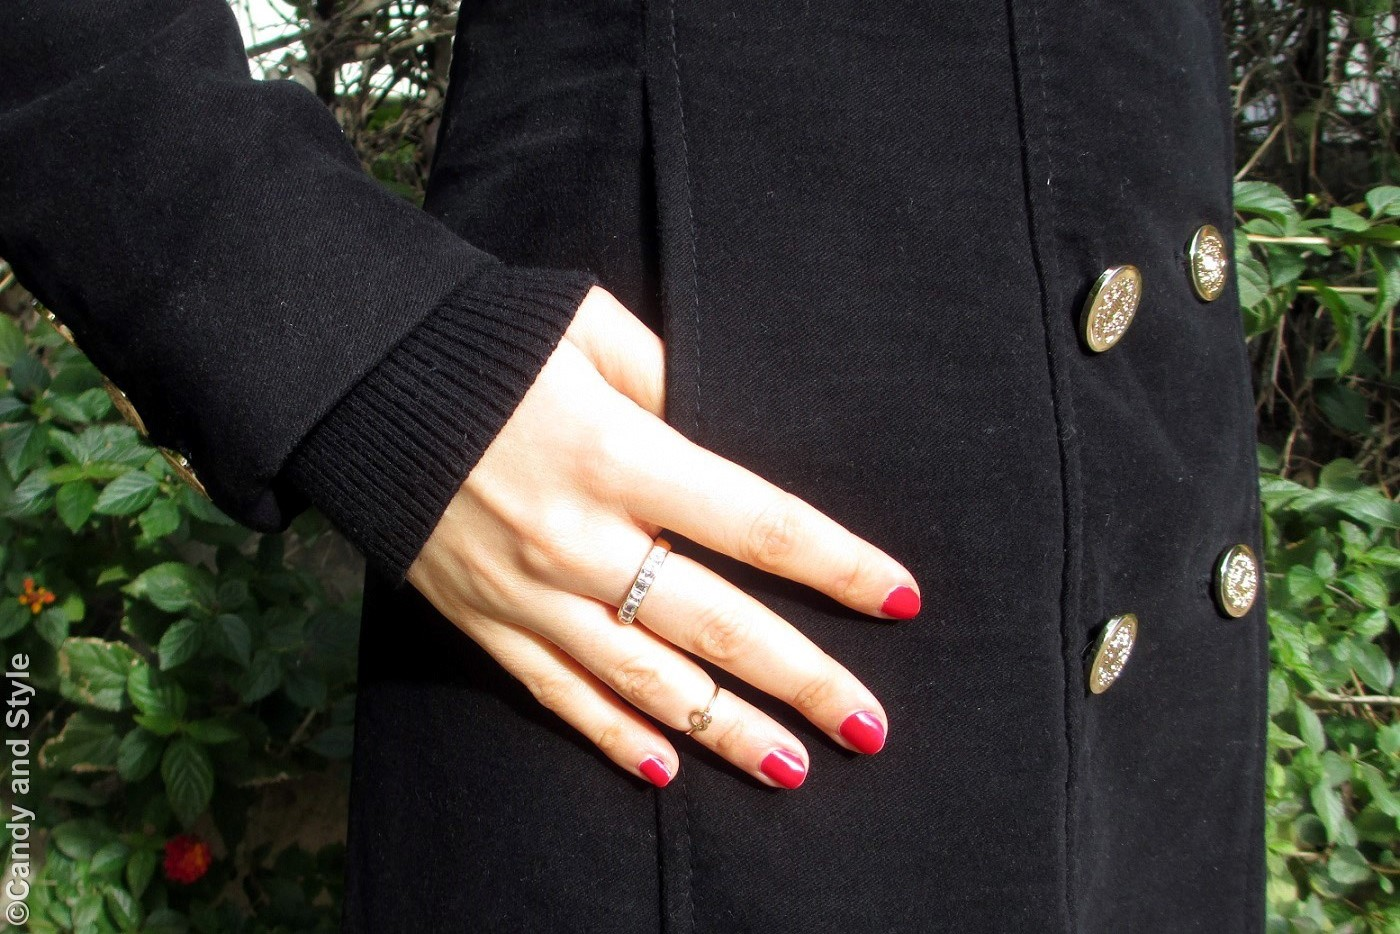 Details - Total Black+RedNails